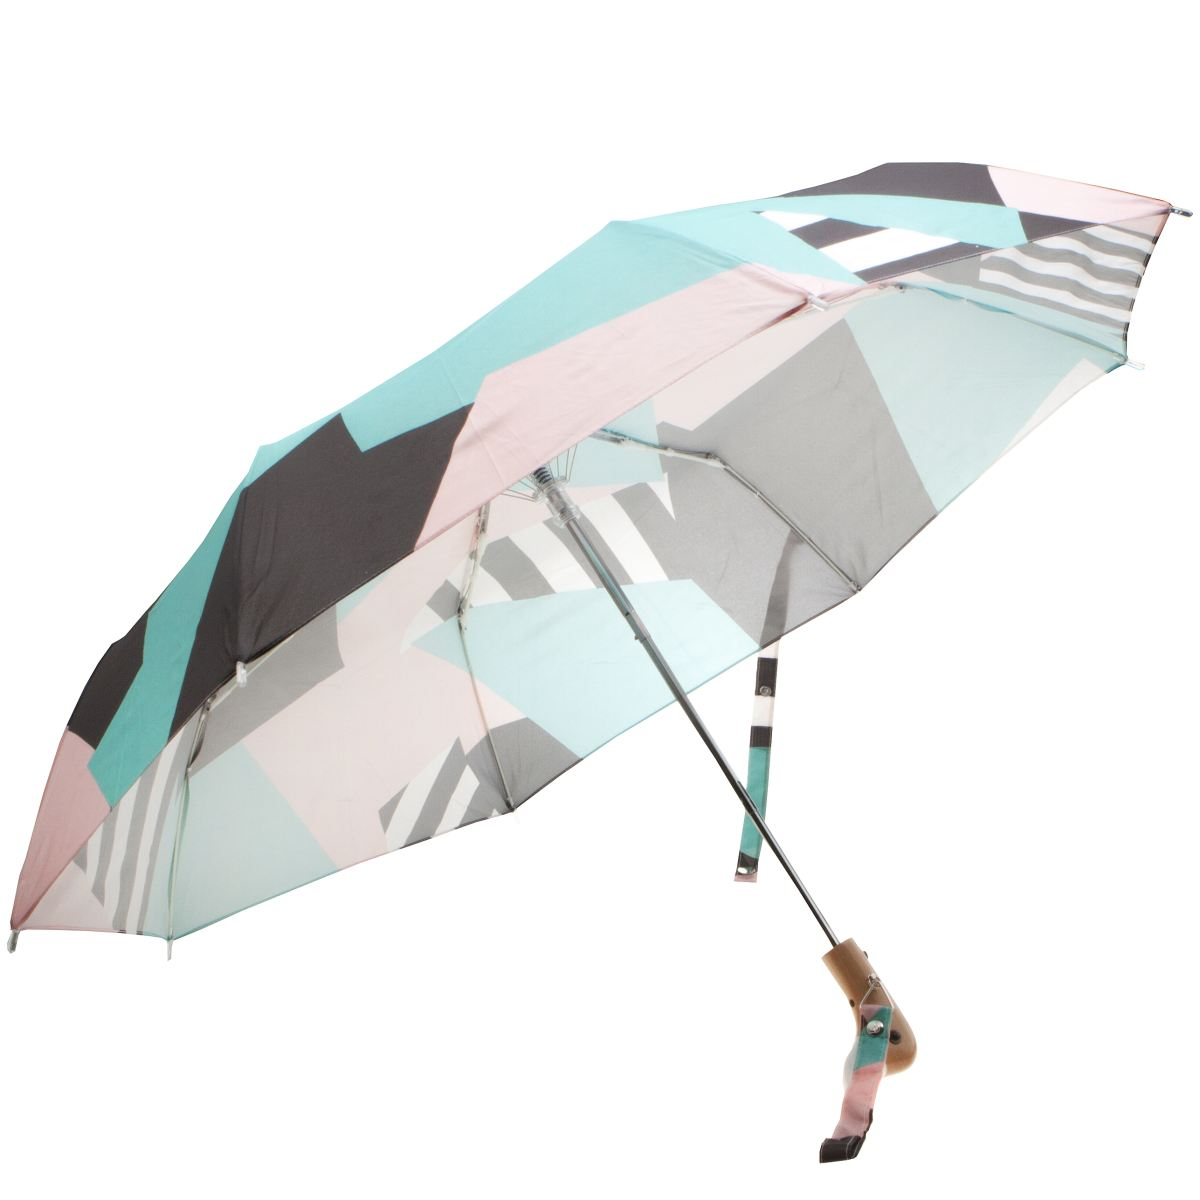 original duckhead Original Duckhead Multi Umbrella Accessory